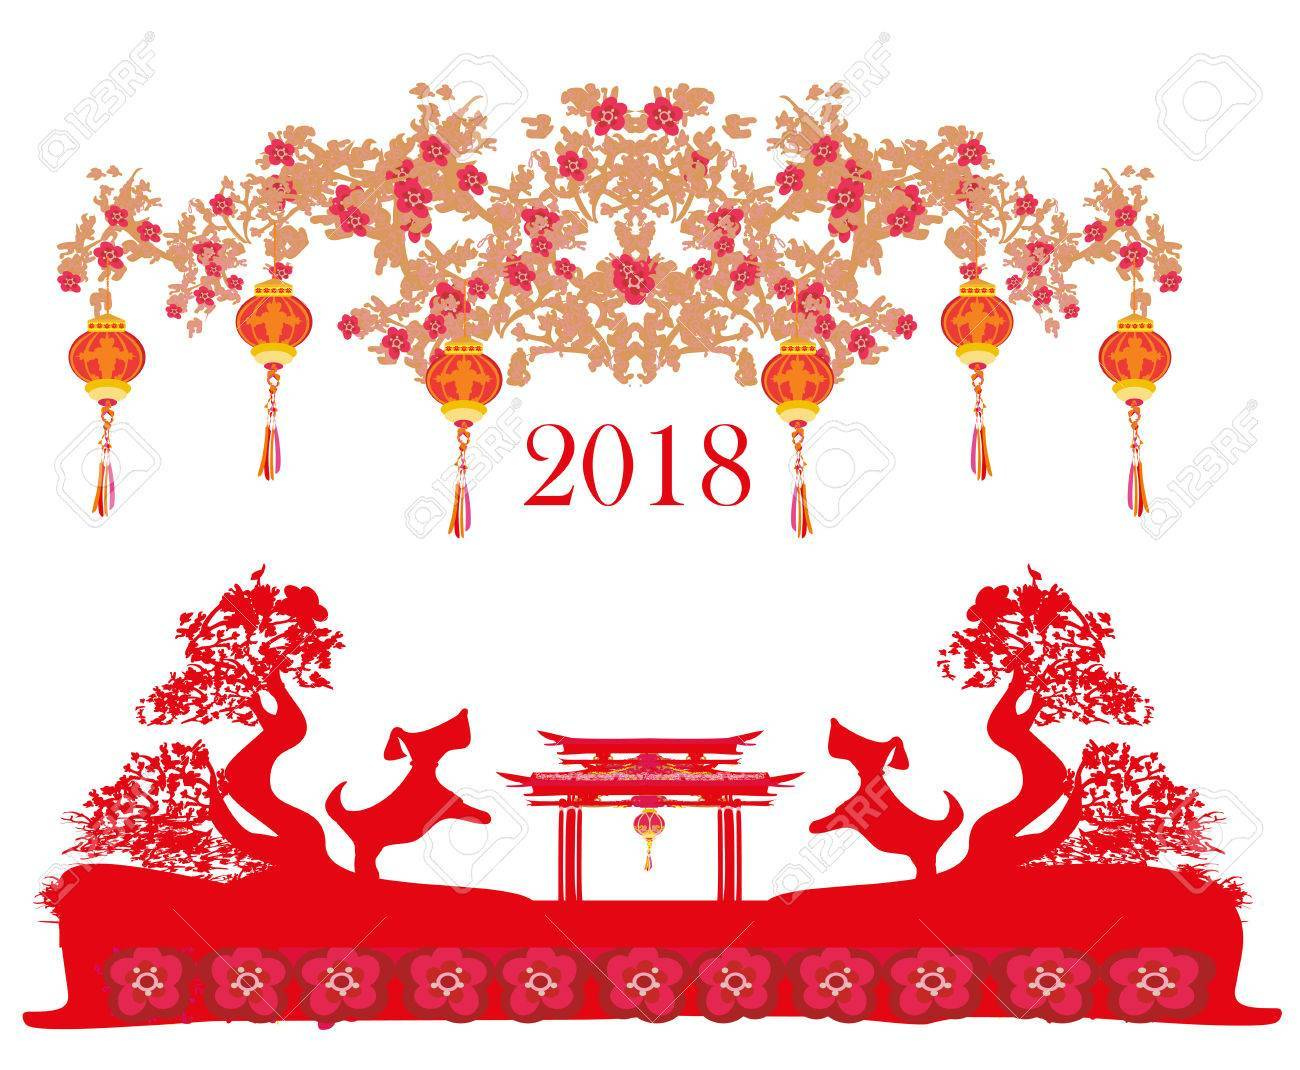 Lunar new year 2018 clipart jpg transparent stock Happy Chinese new year 2018 card, year of the dog » Clipart ... jpg transparent stock